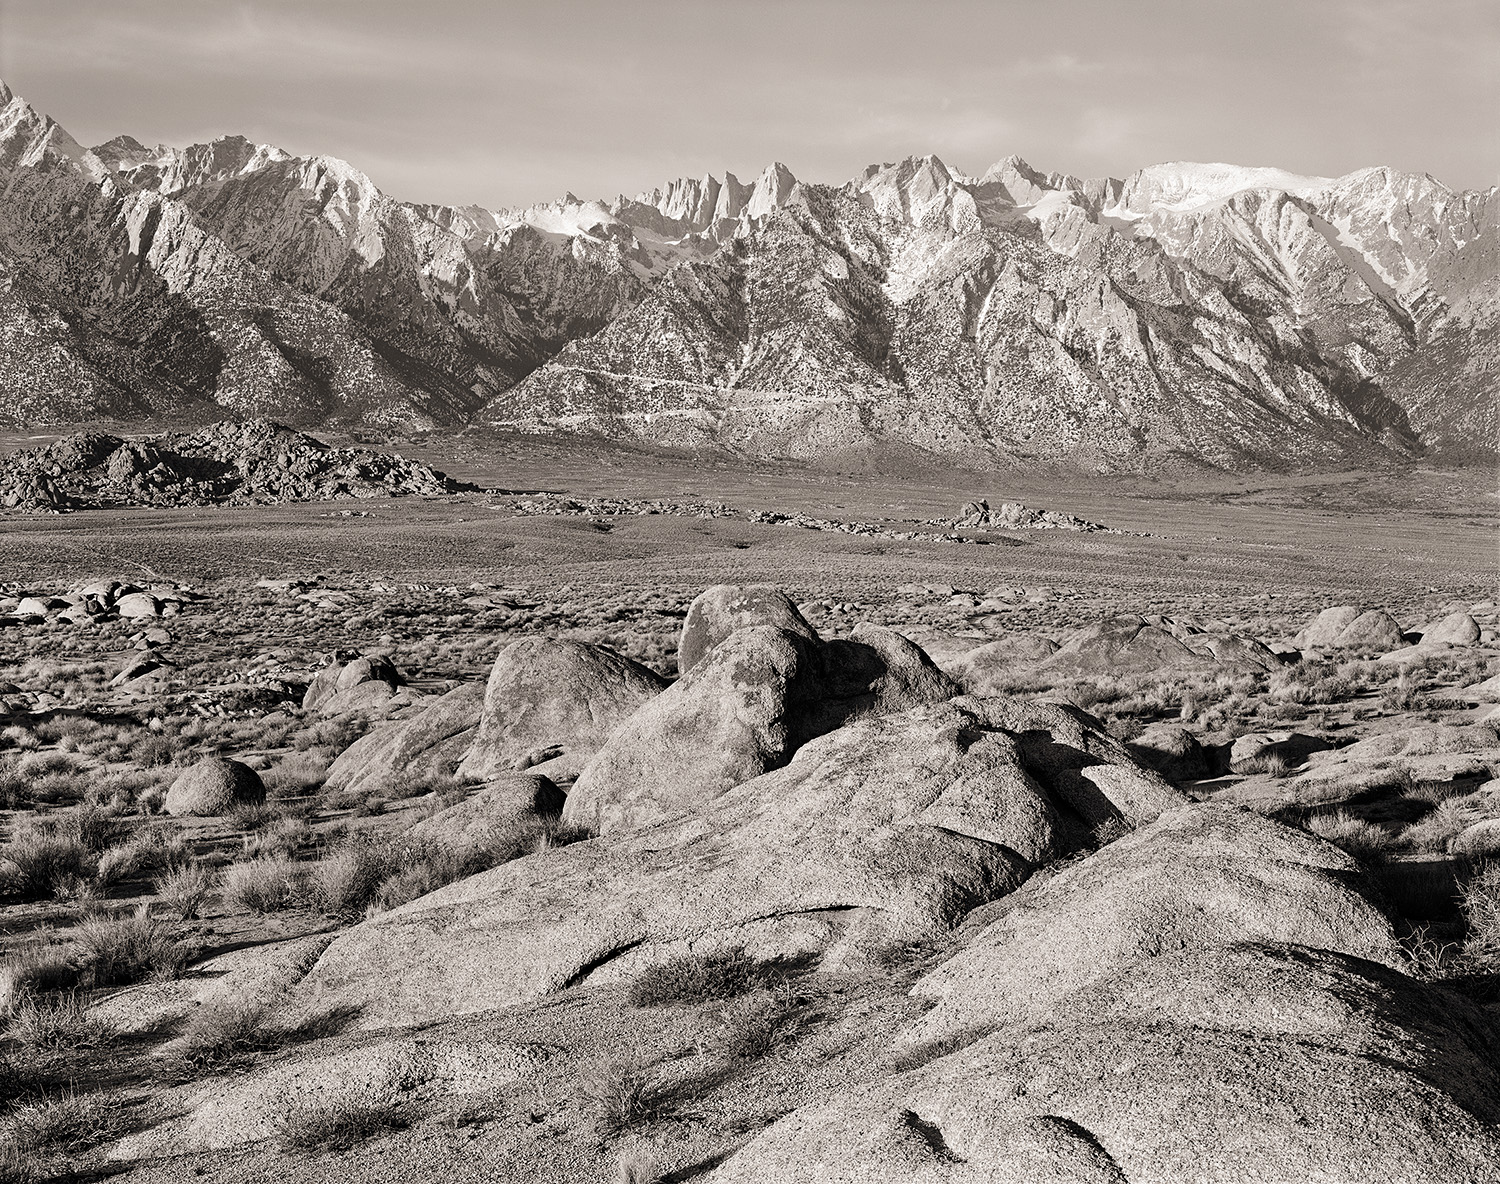 OwensValley, 2007-1500px-with-split-tone-color.jpg